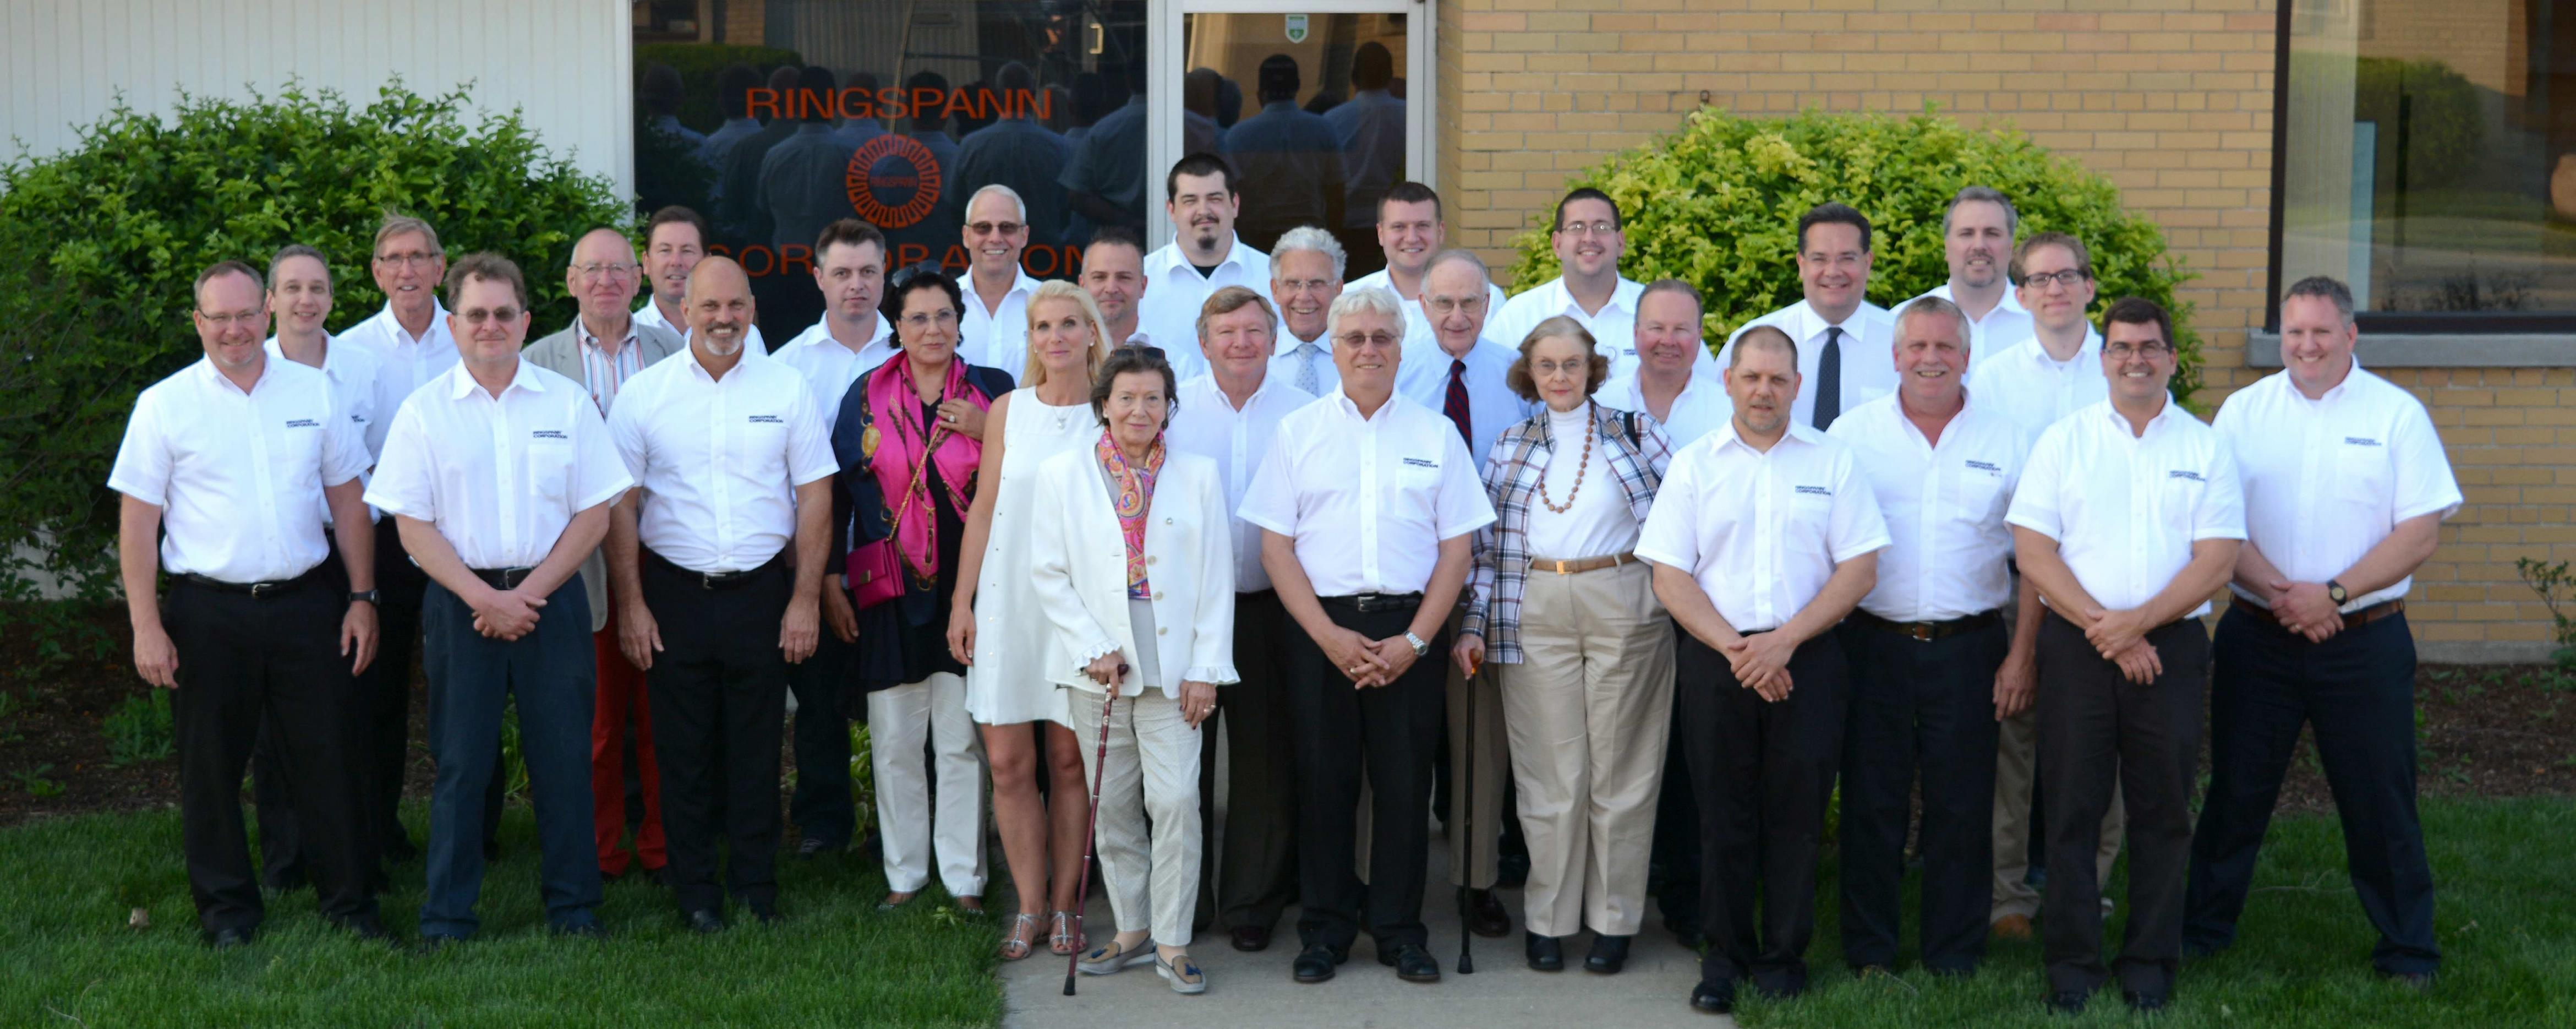 rsco group photo gross